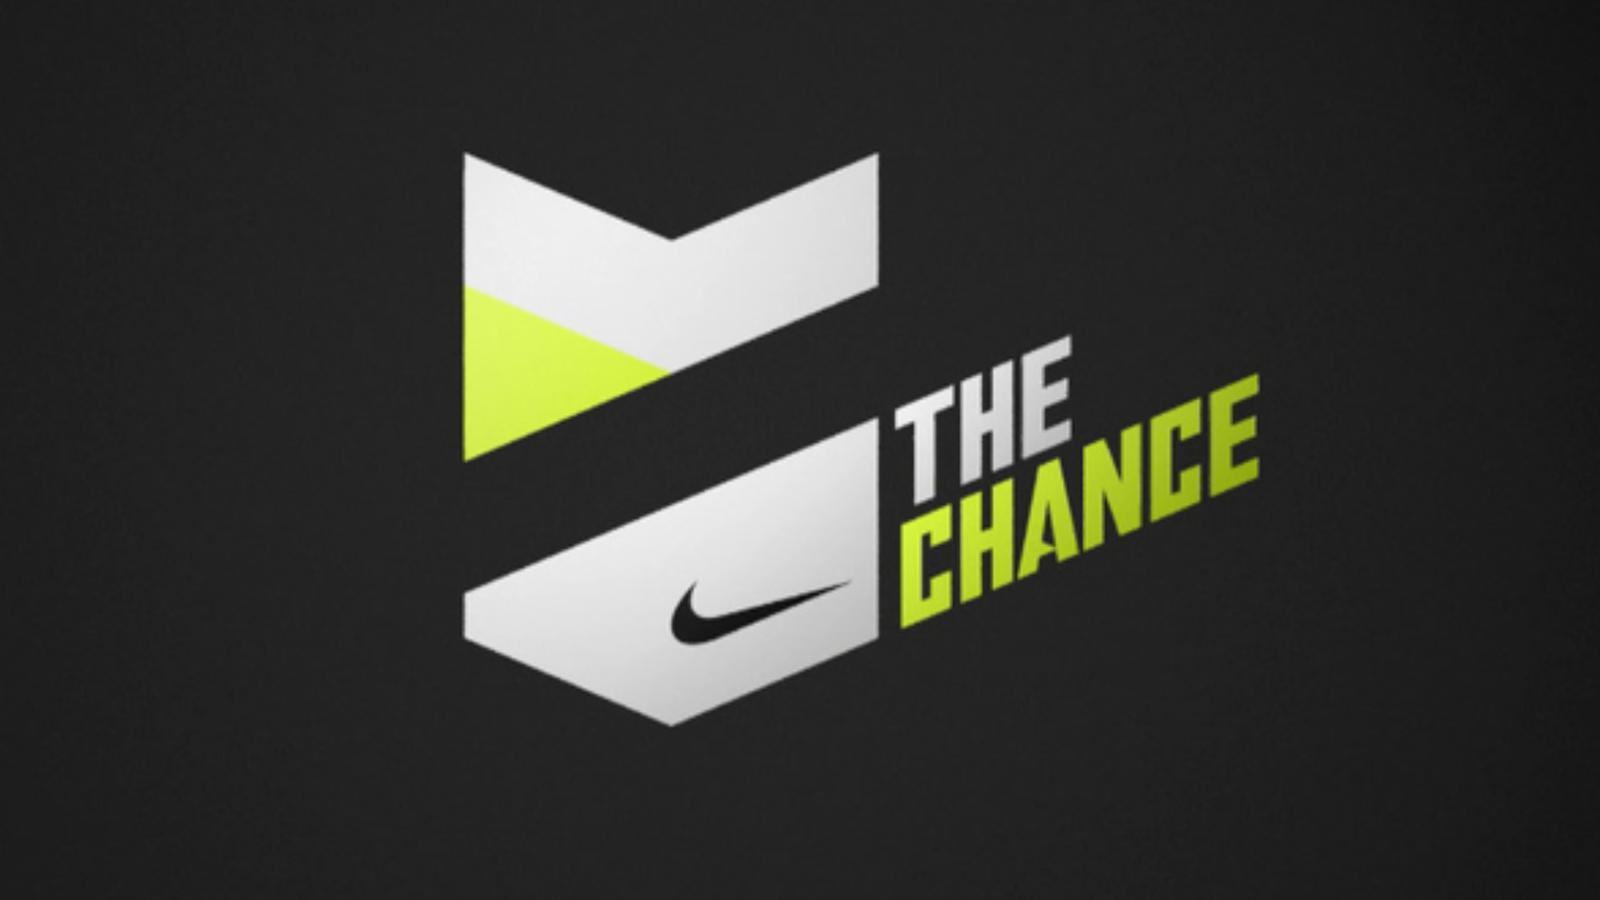 Saltar Separación Perímetro  The Chance: the search for undiscovered football talent continues - Nike  News